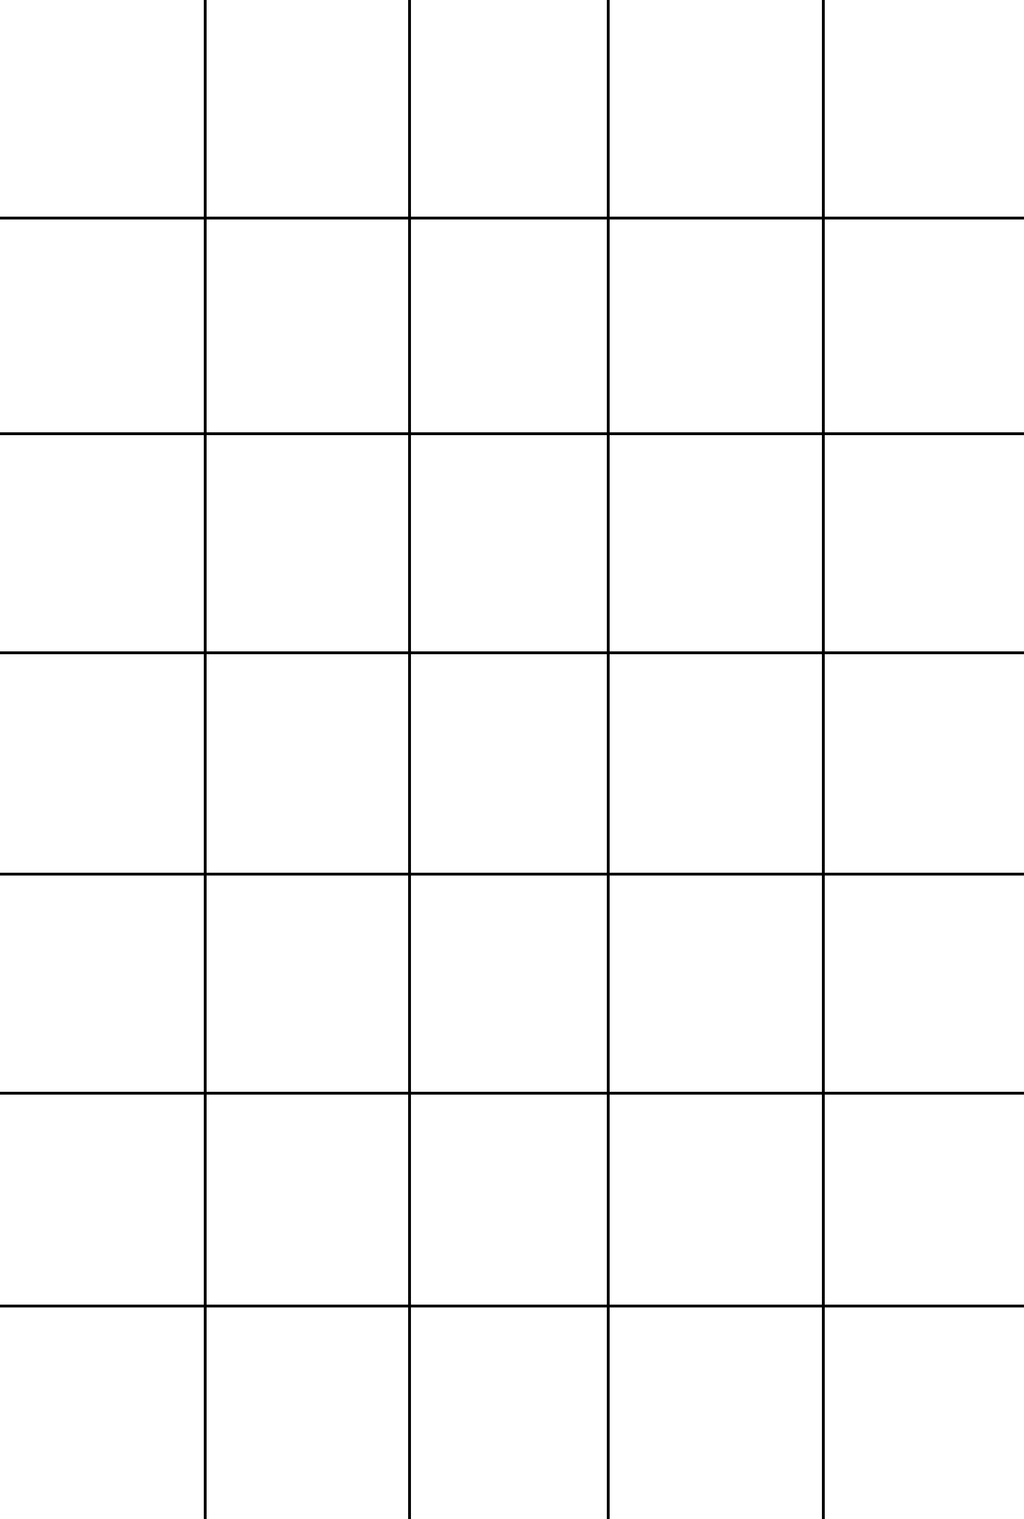 draw_yourself_style_meme_template_by_crystalwolf953 d78m8da drawyourself explore drawyourself on deviantart